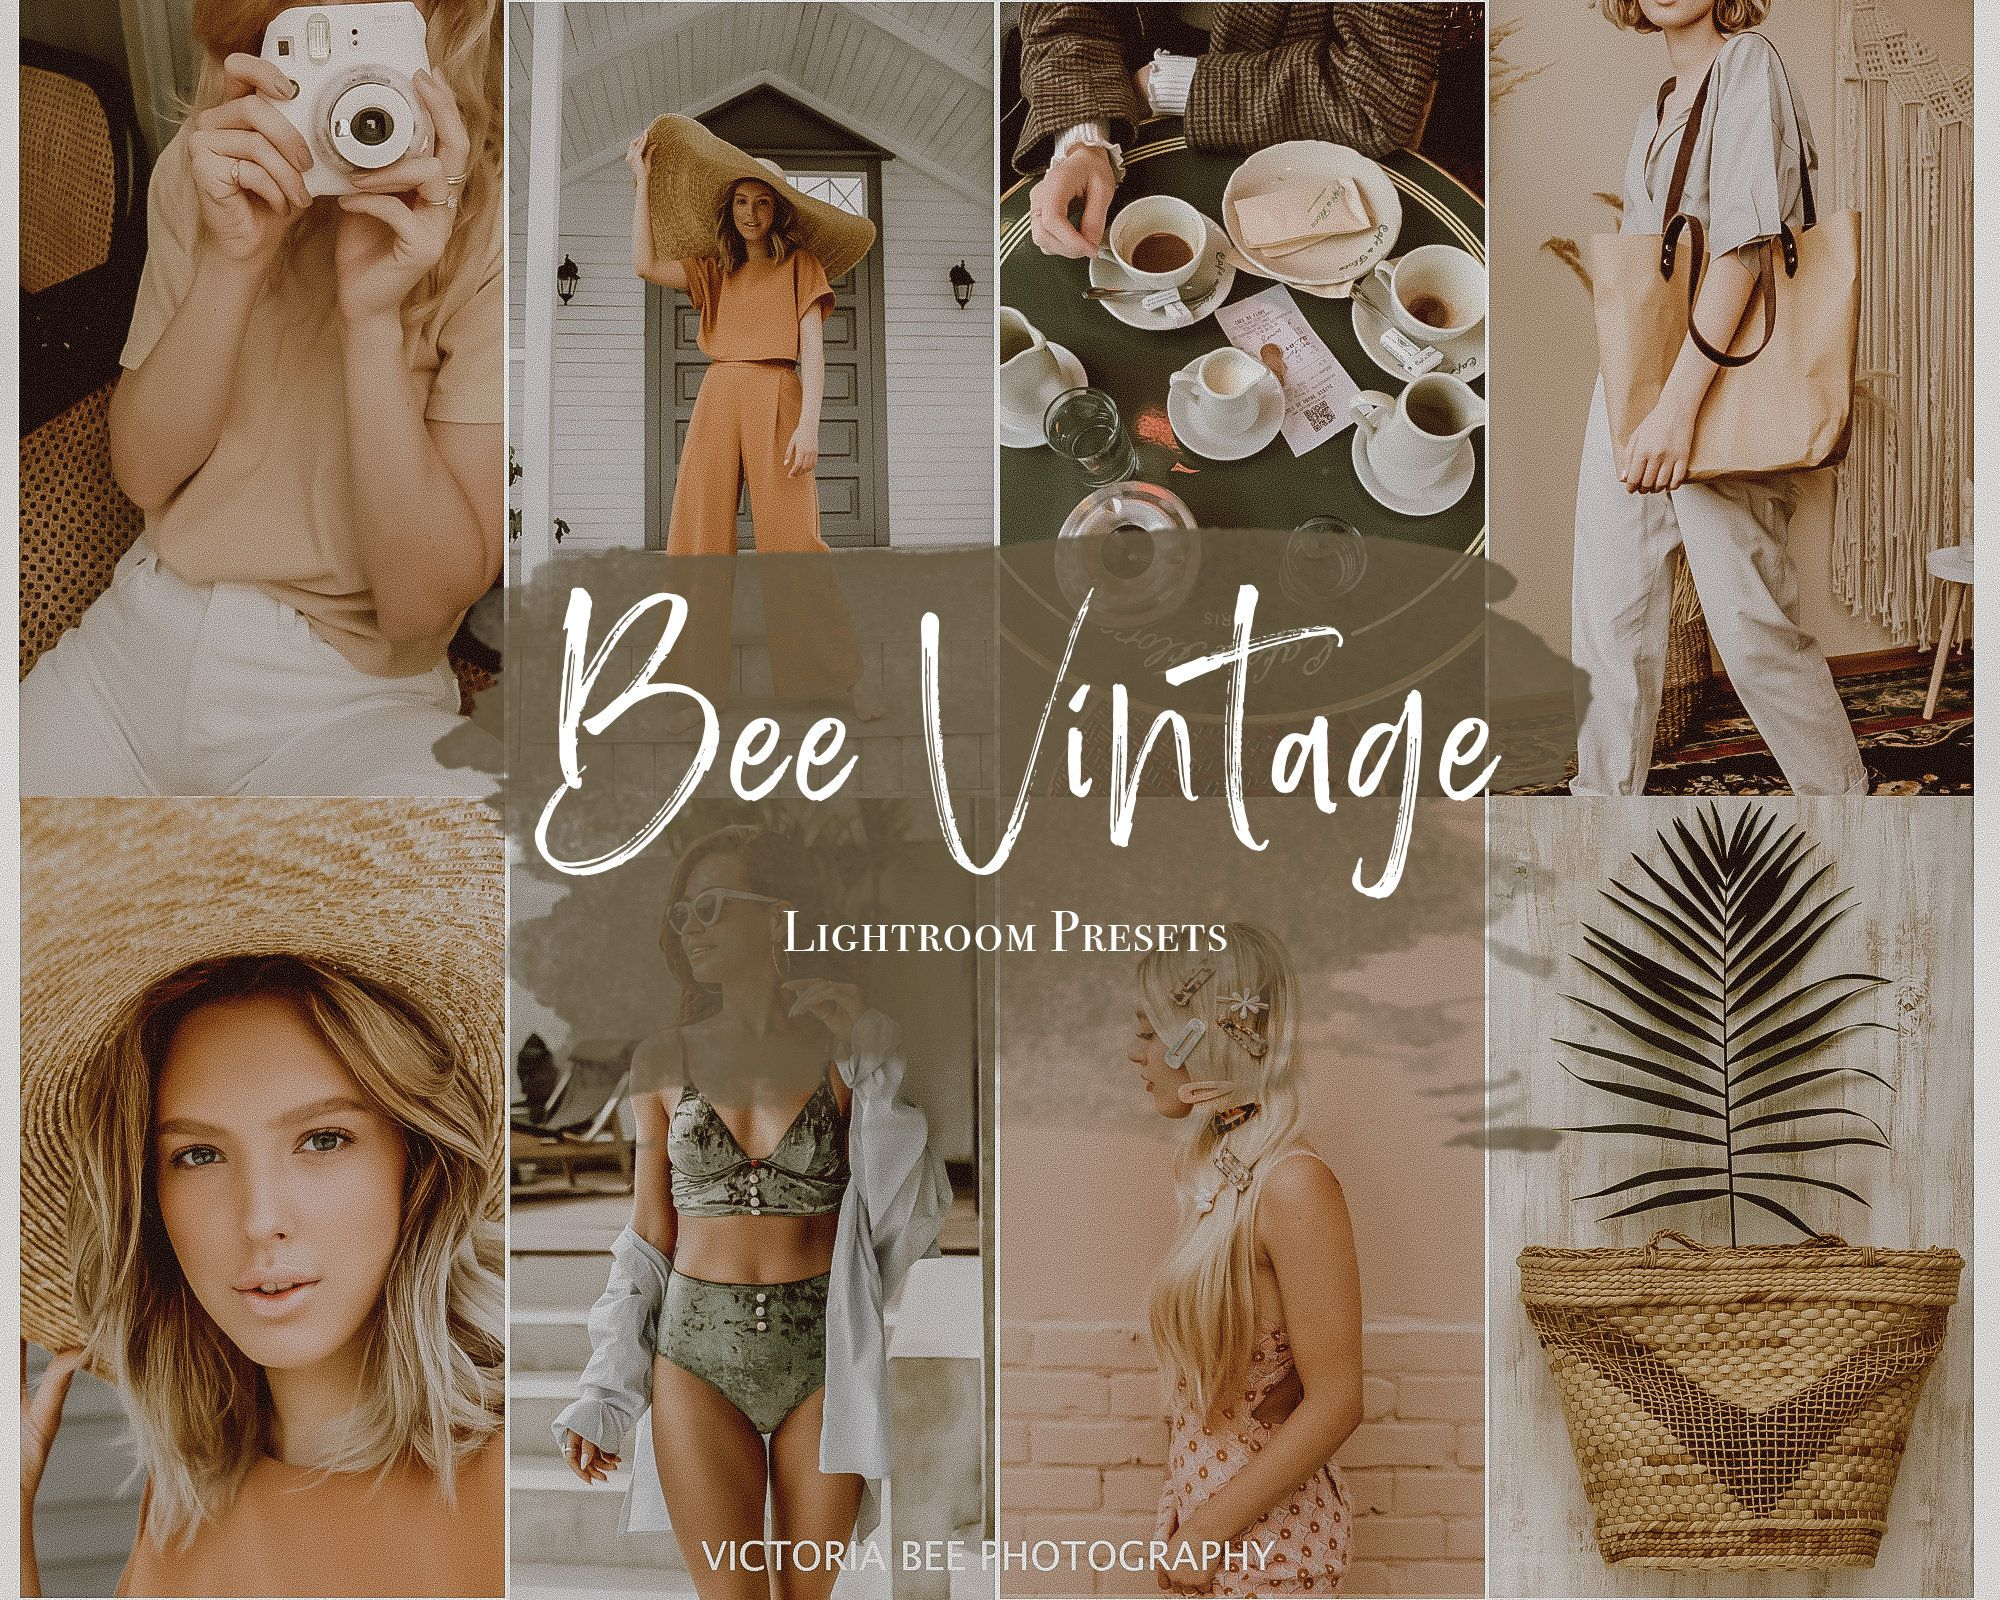 5 Mobile Lightroom Preset Bee Vintage Instagram Preset Etsy In 2020 Vintage Lightroom Presets Lightroom Presets Vintage Instagram